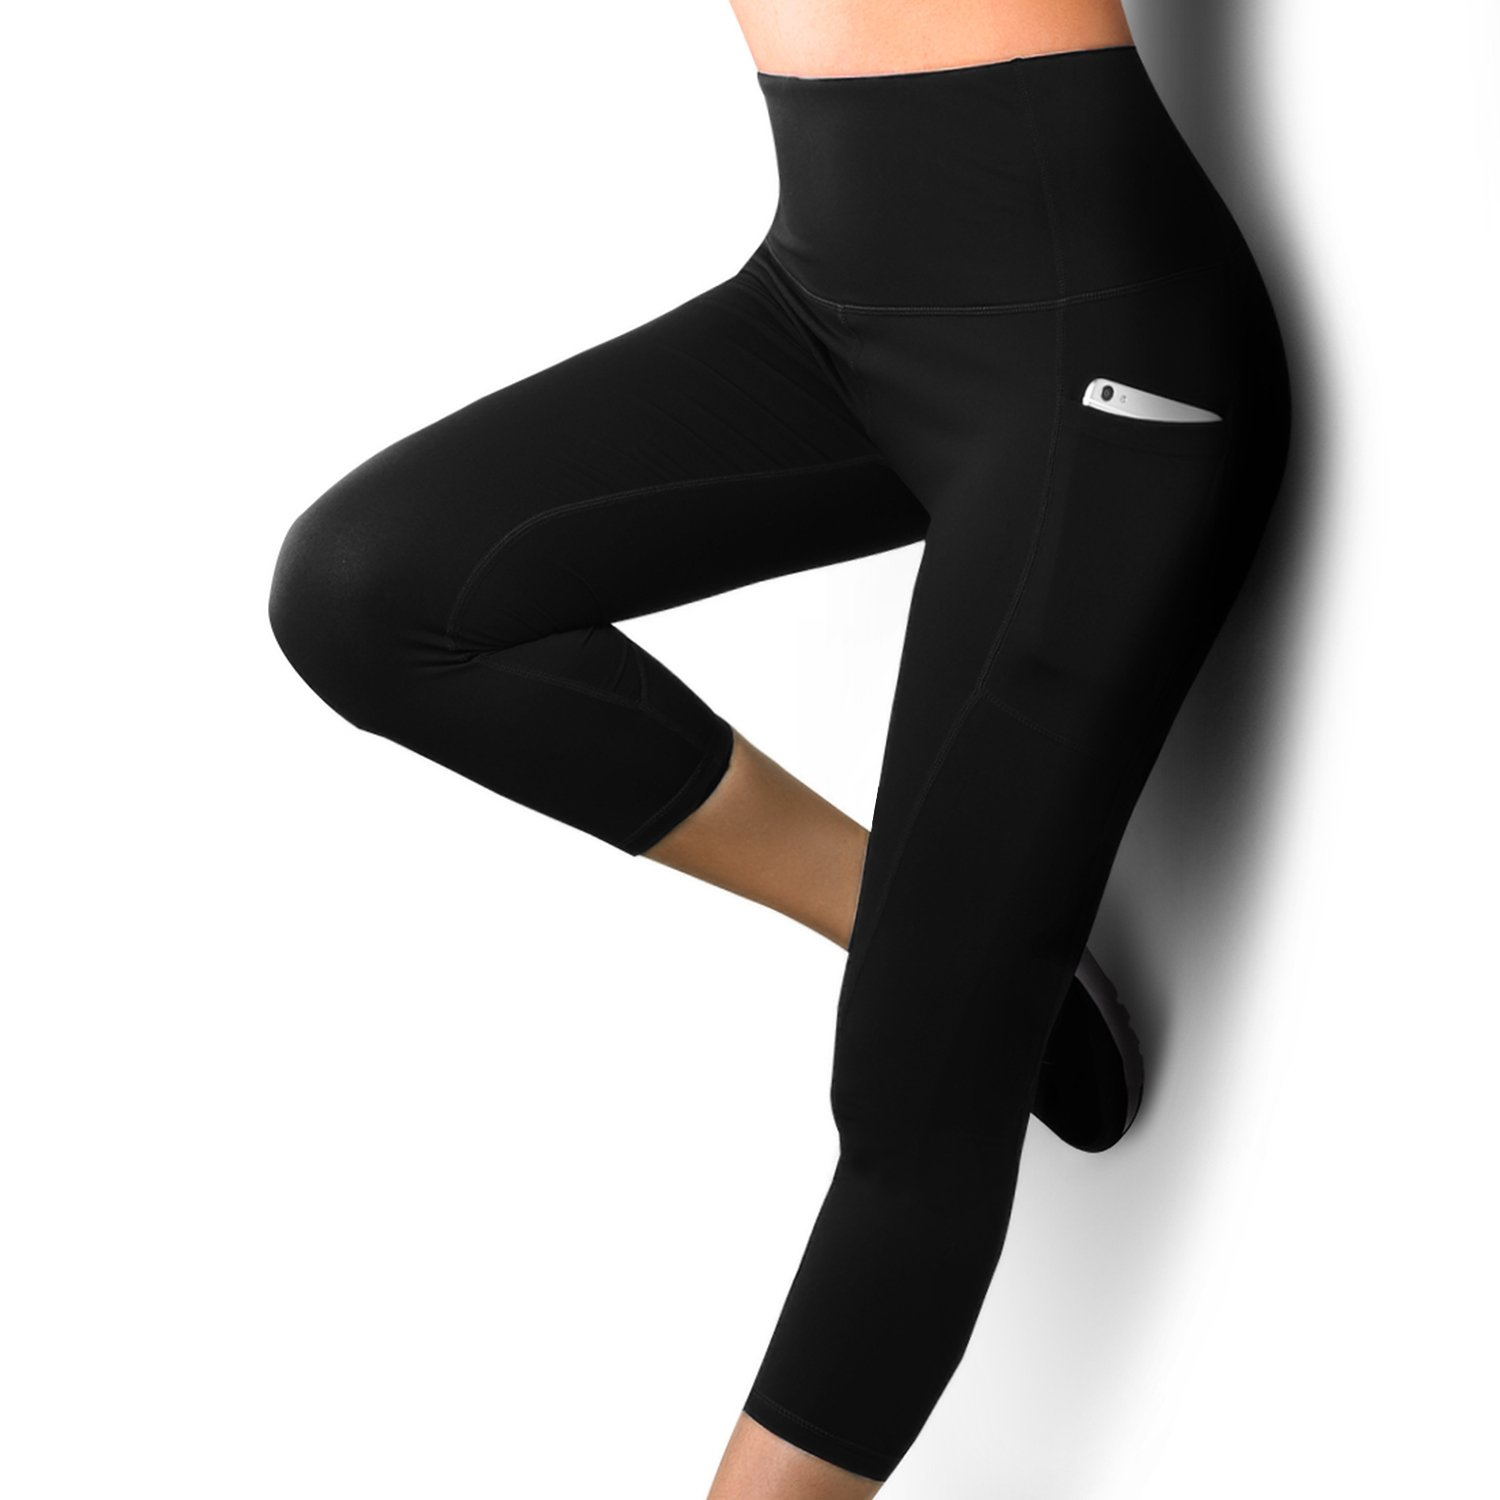 REIDAY High Waist Out Pocket Yoga Pants, Tummy Control, 3/4 Shapewear Leggings, Non See-Through Fabric, Running 4 Way Stretch